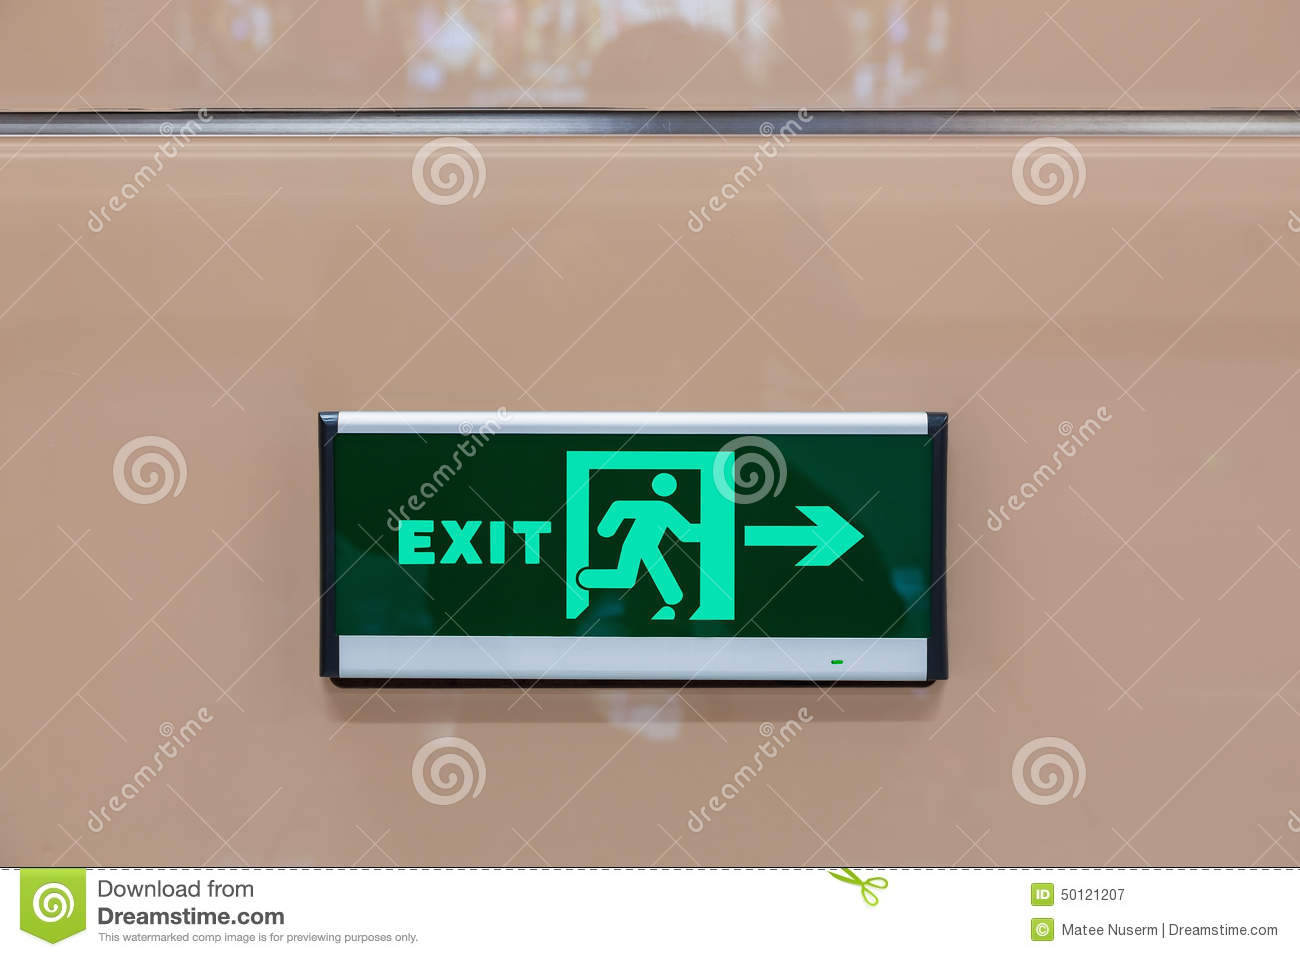 Wall Mounted Exit Lights : Exit Light Stock Photo - Image: 50121207